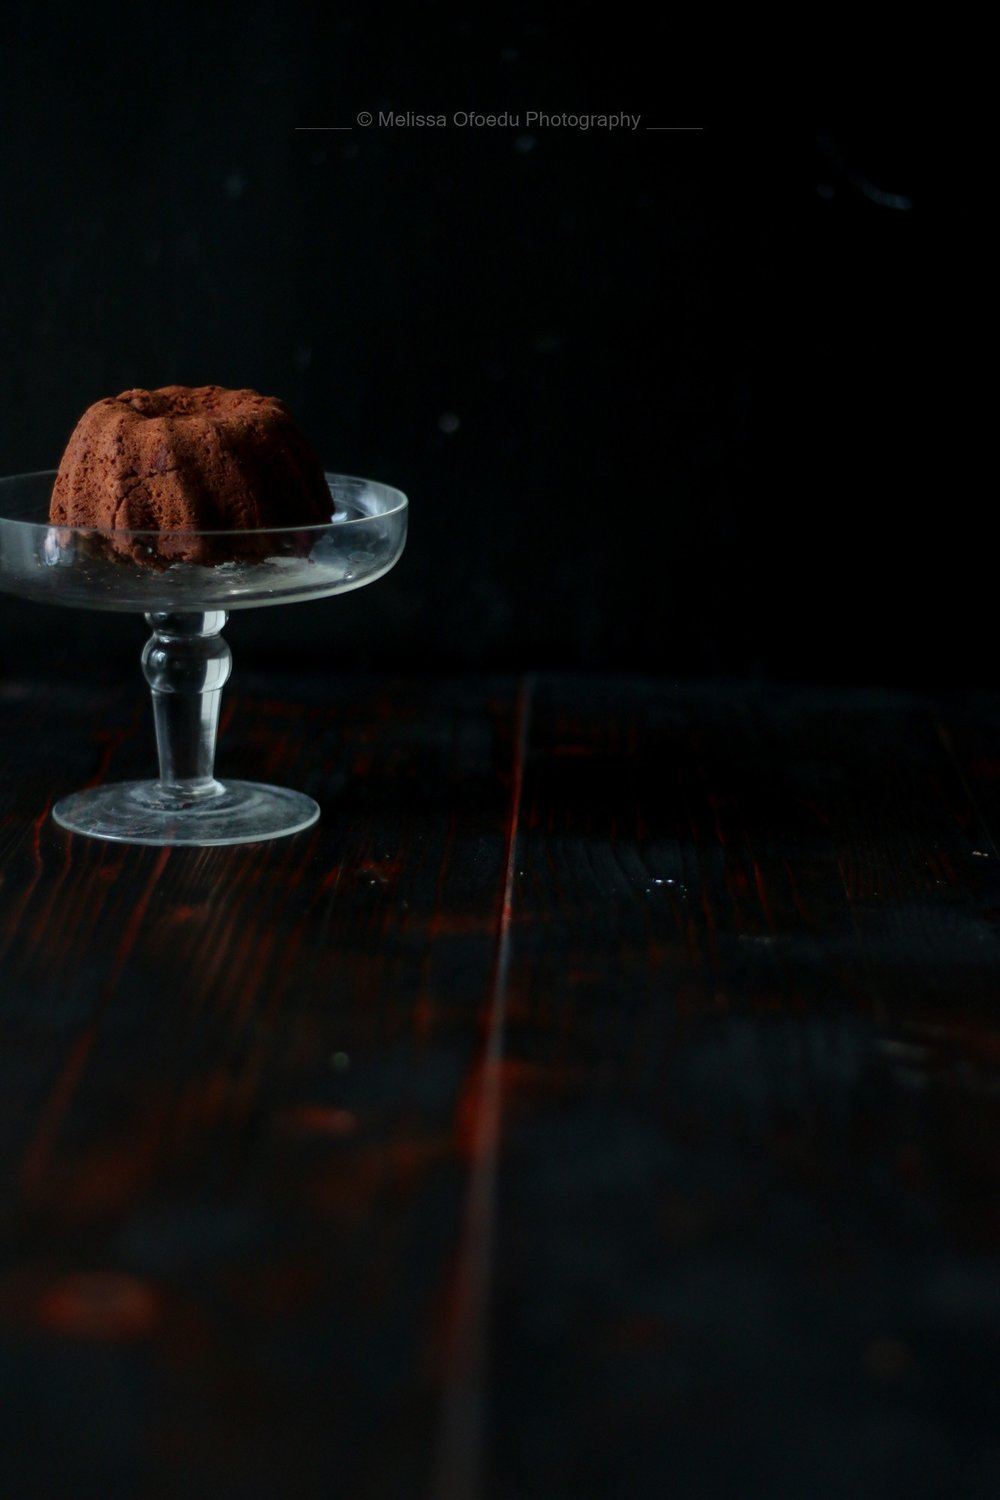 Mini-Chocolate-Bundt-Cake-by-Melissa-Ofoedu-for-A-Sweet-Point-of-View-1.jpg